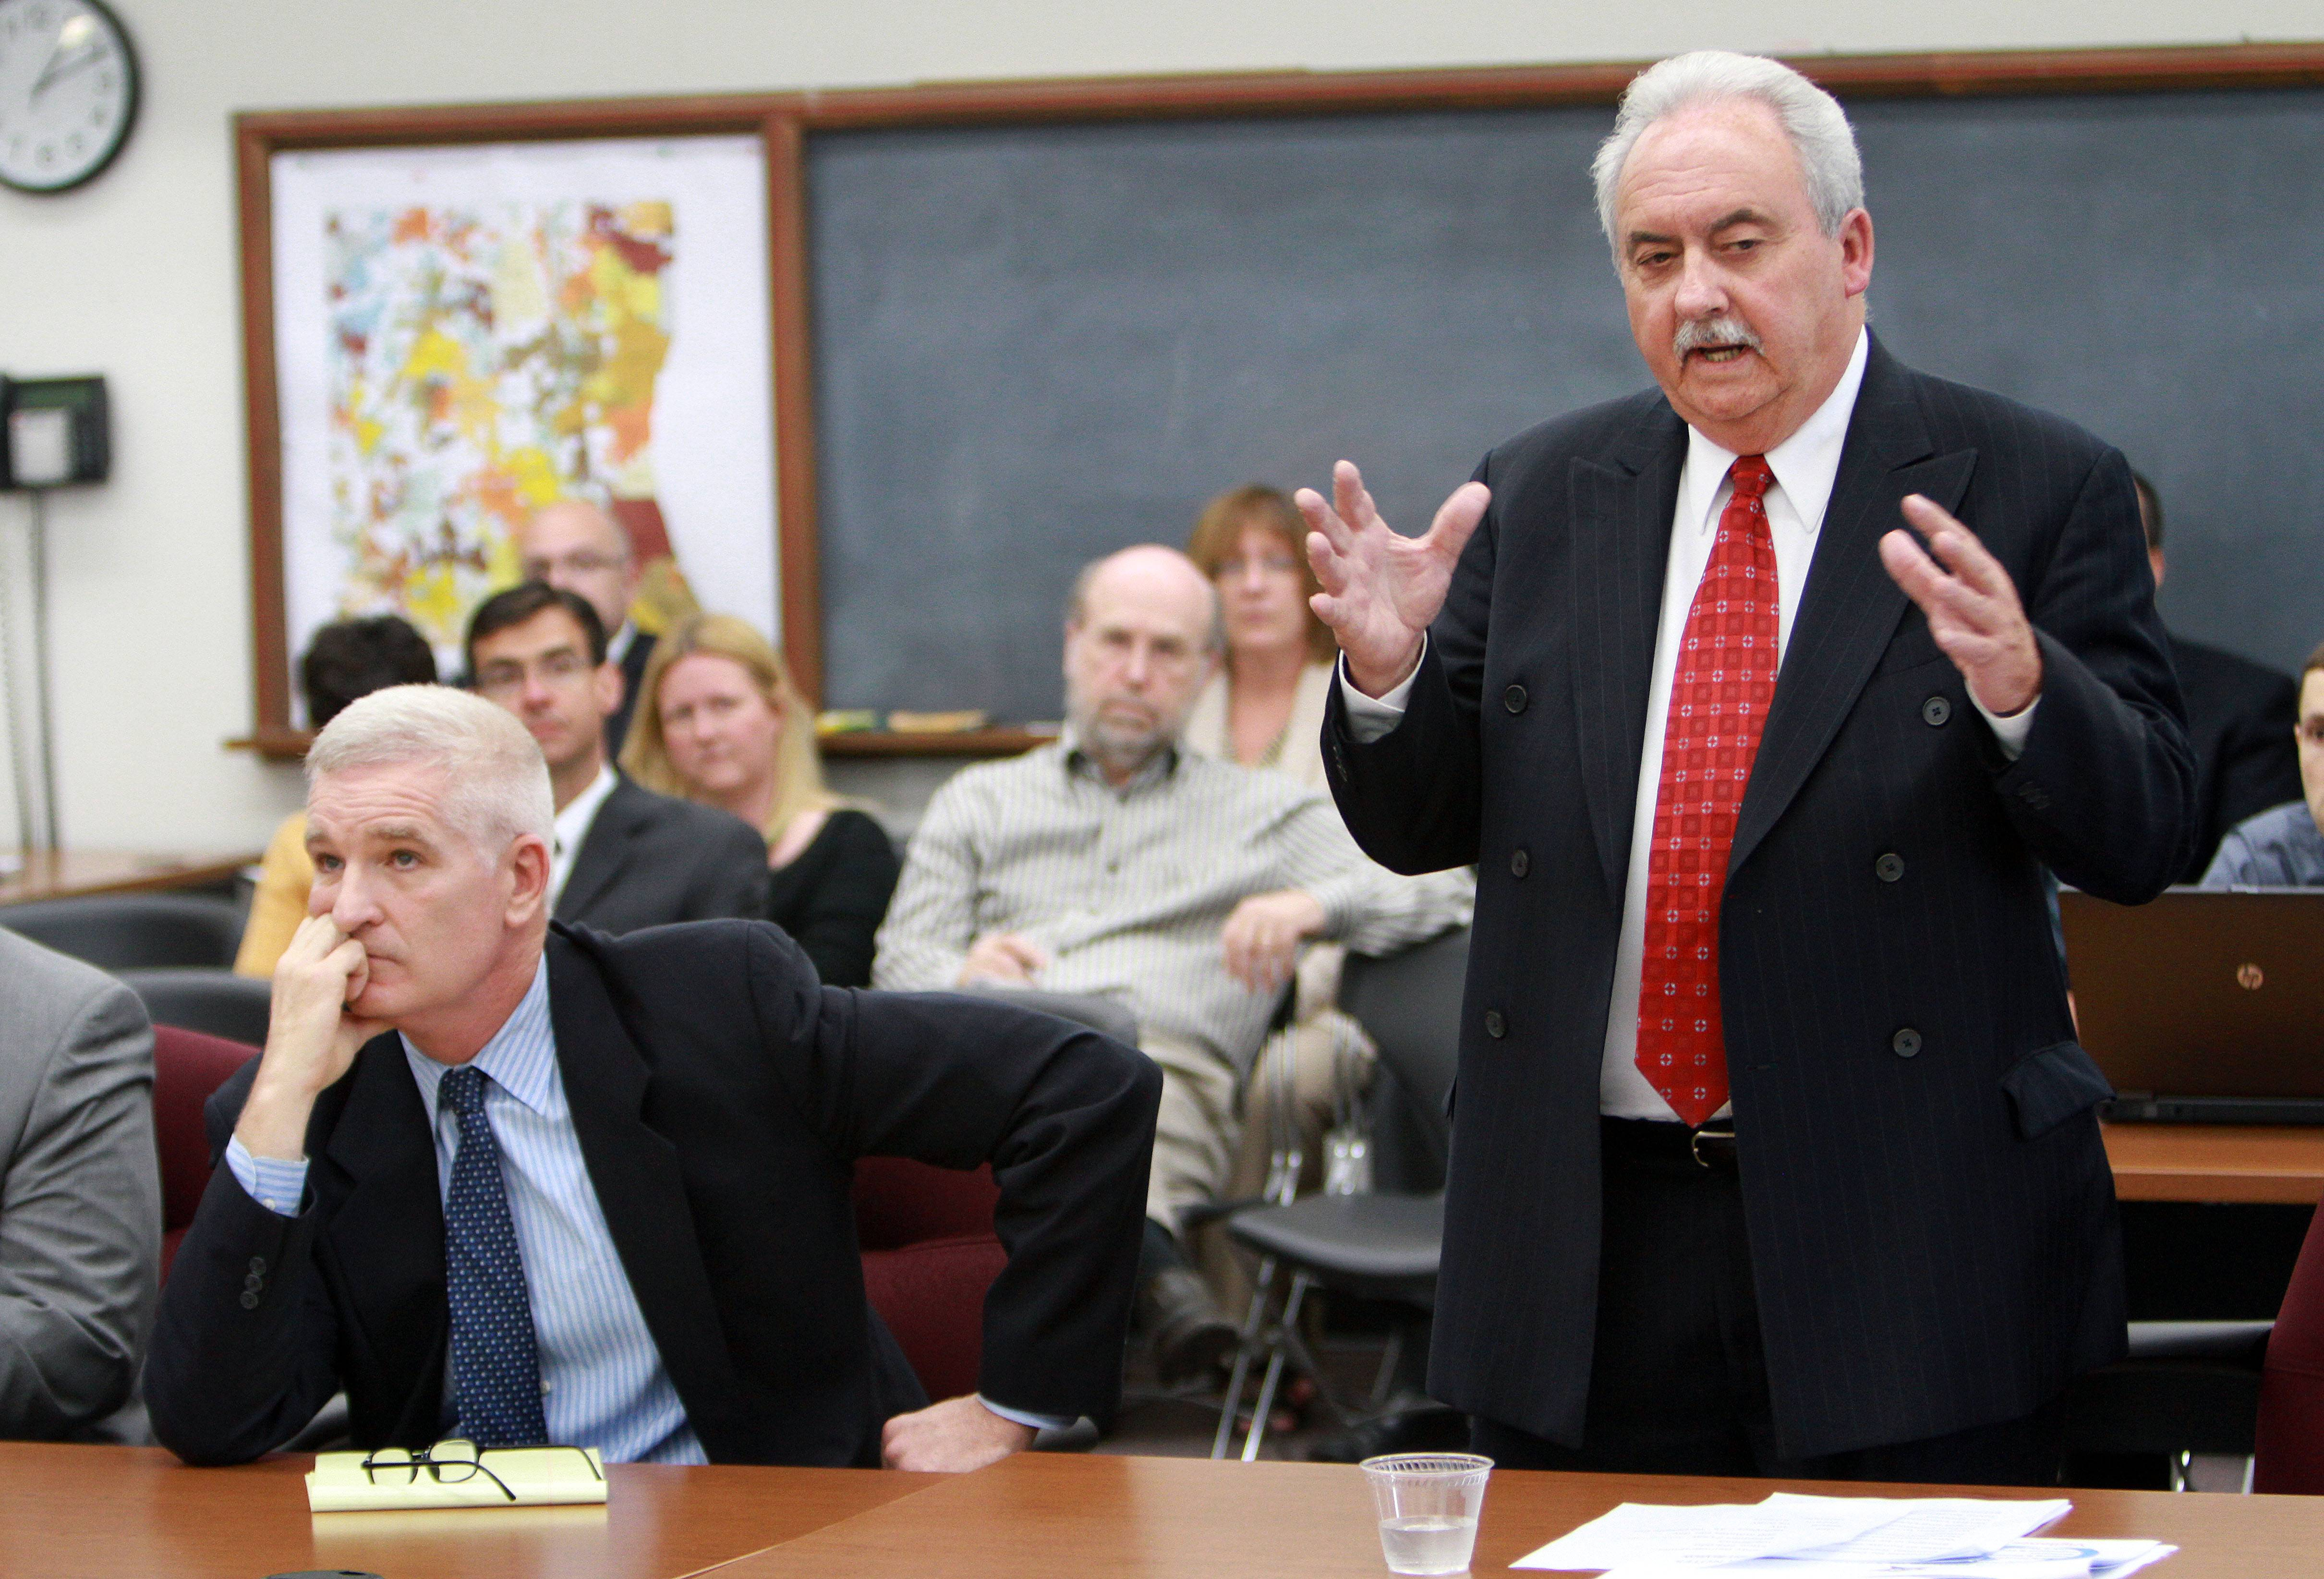 Lake County Sheriff Mark Curran, left, and Undersheriff Raymond J. Rose present a report to a Lake County Board committee Wednesday regarding the death of inmate Eugene Gruber in 2012.